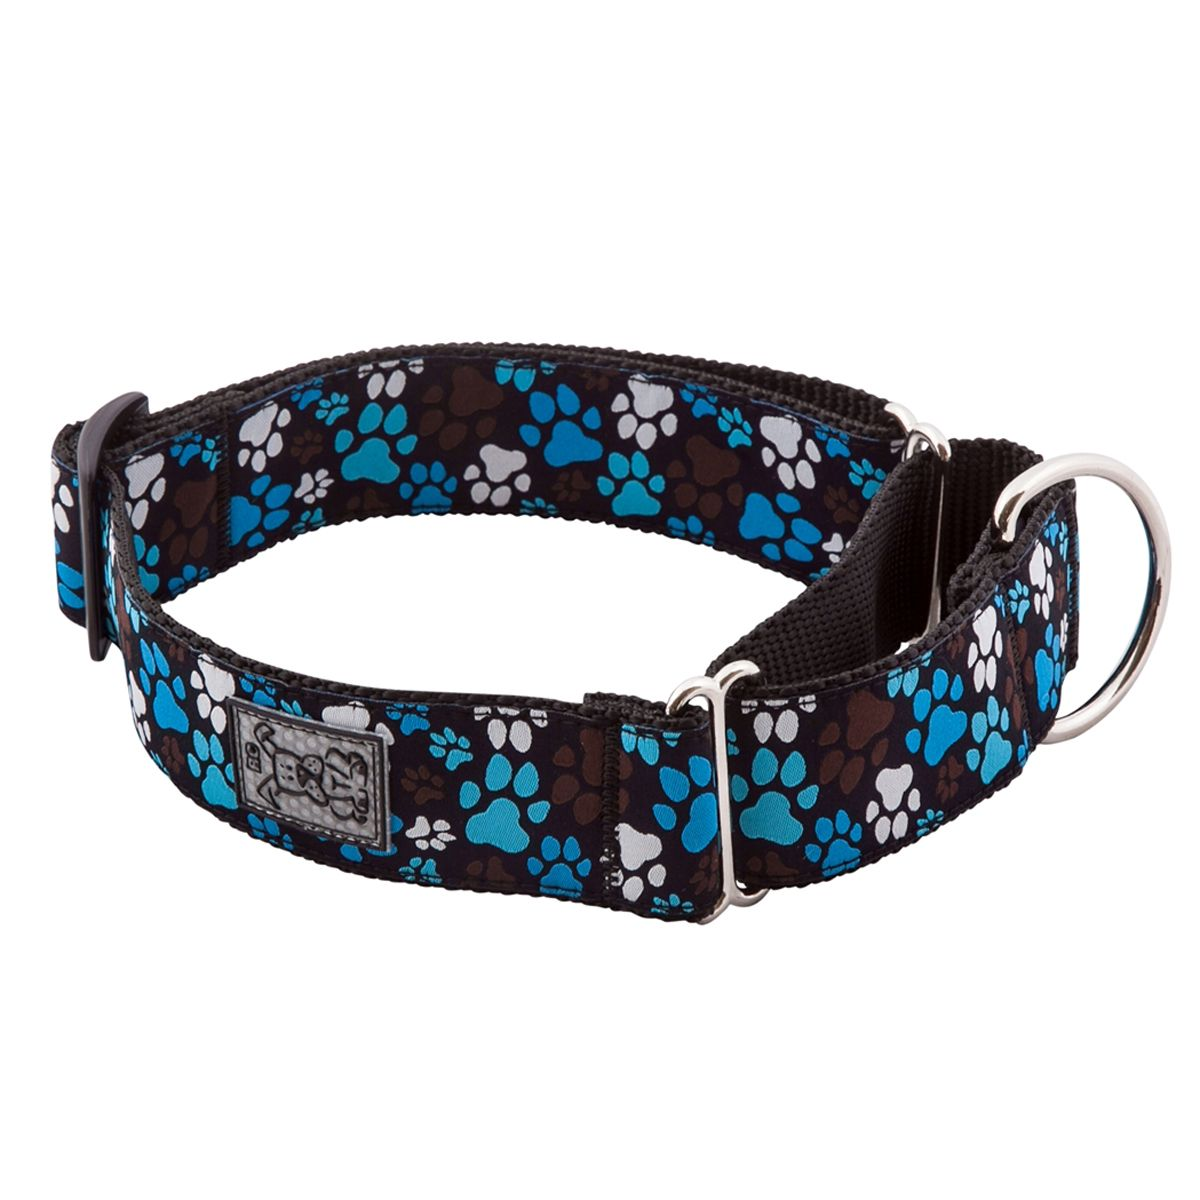 All Webbing Martingale Dog Training Collar Pitter Patter